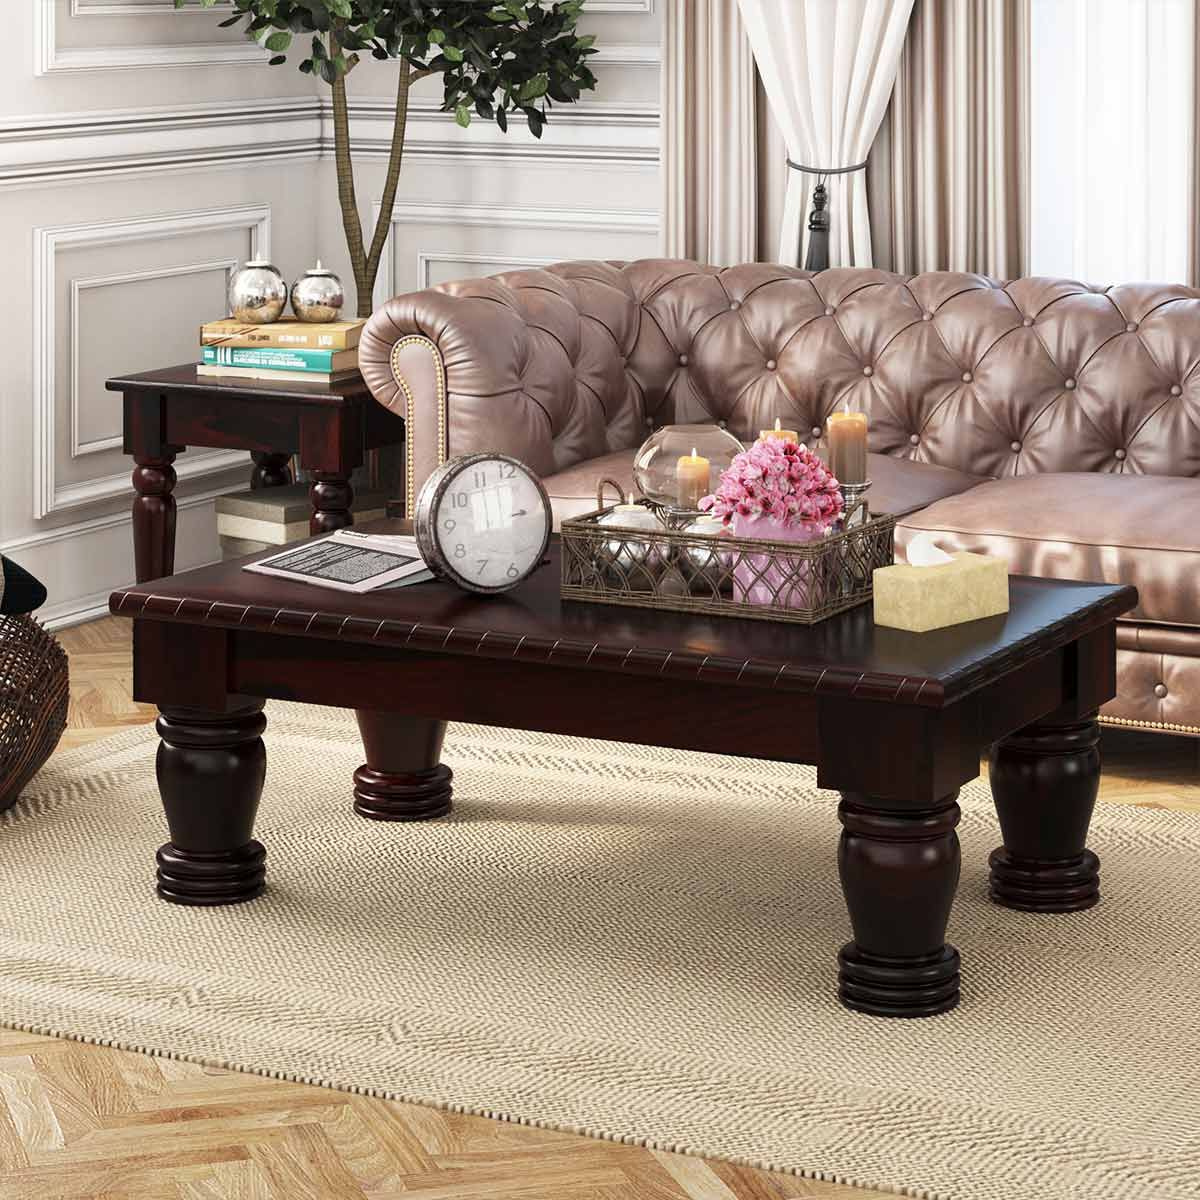 - Vallecito Country Style Rustic Solid Wood Large Coffee Table (With